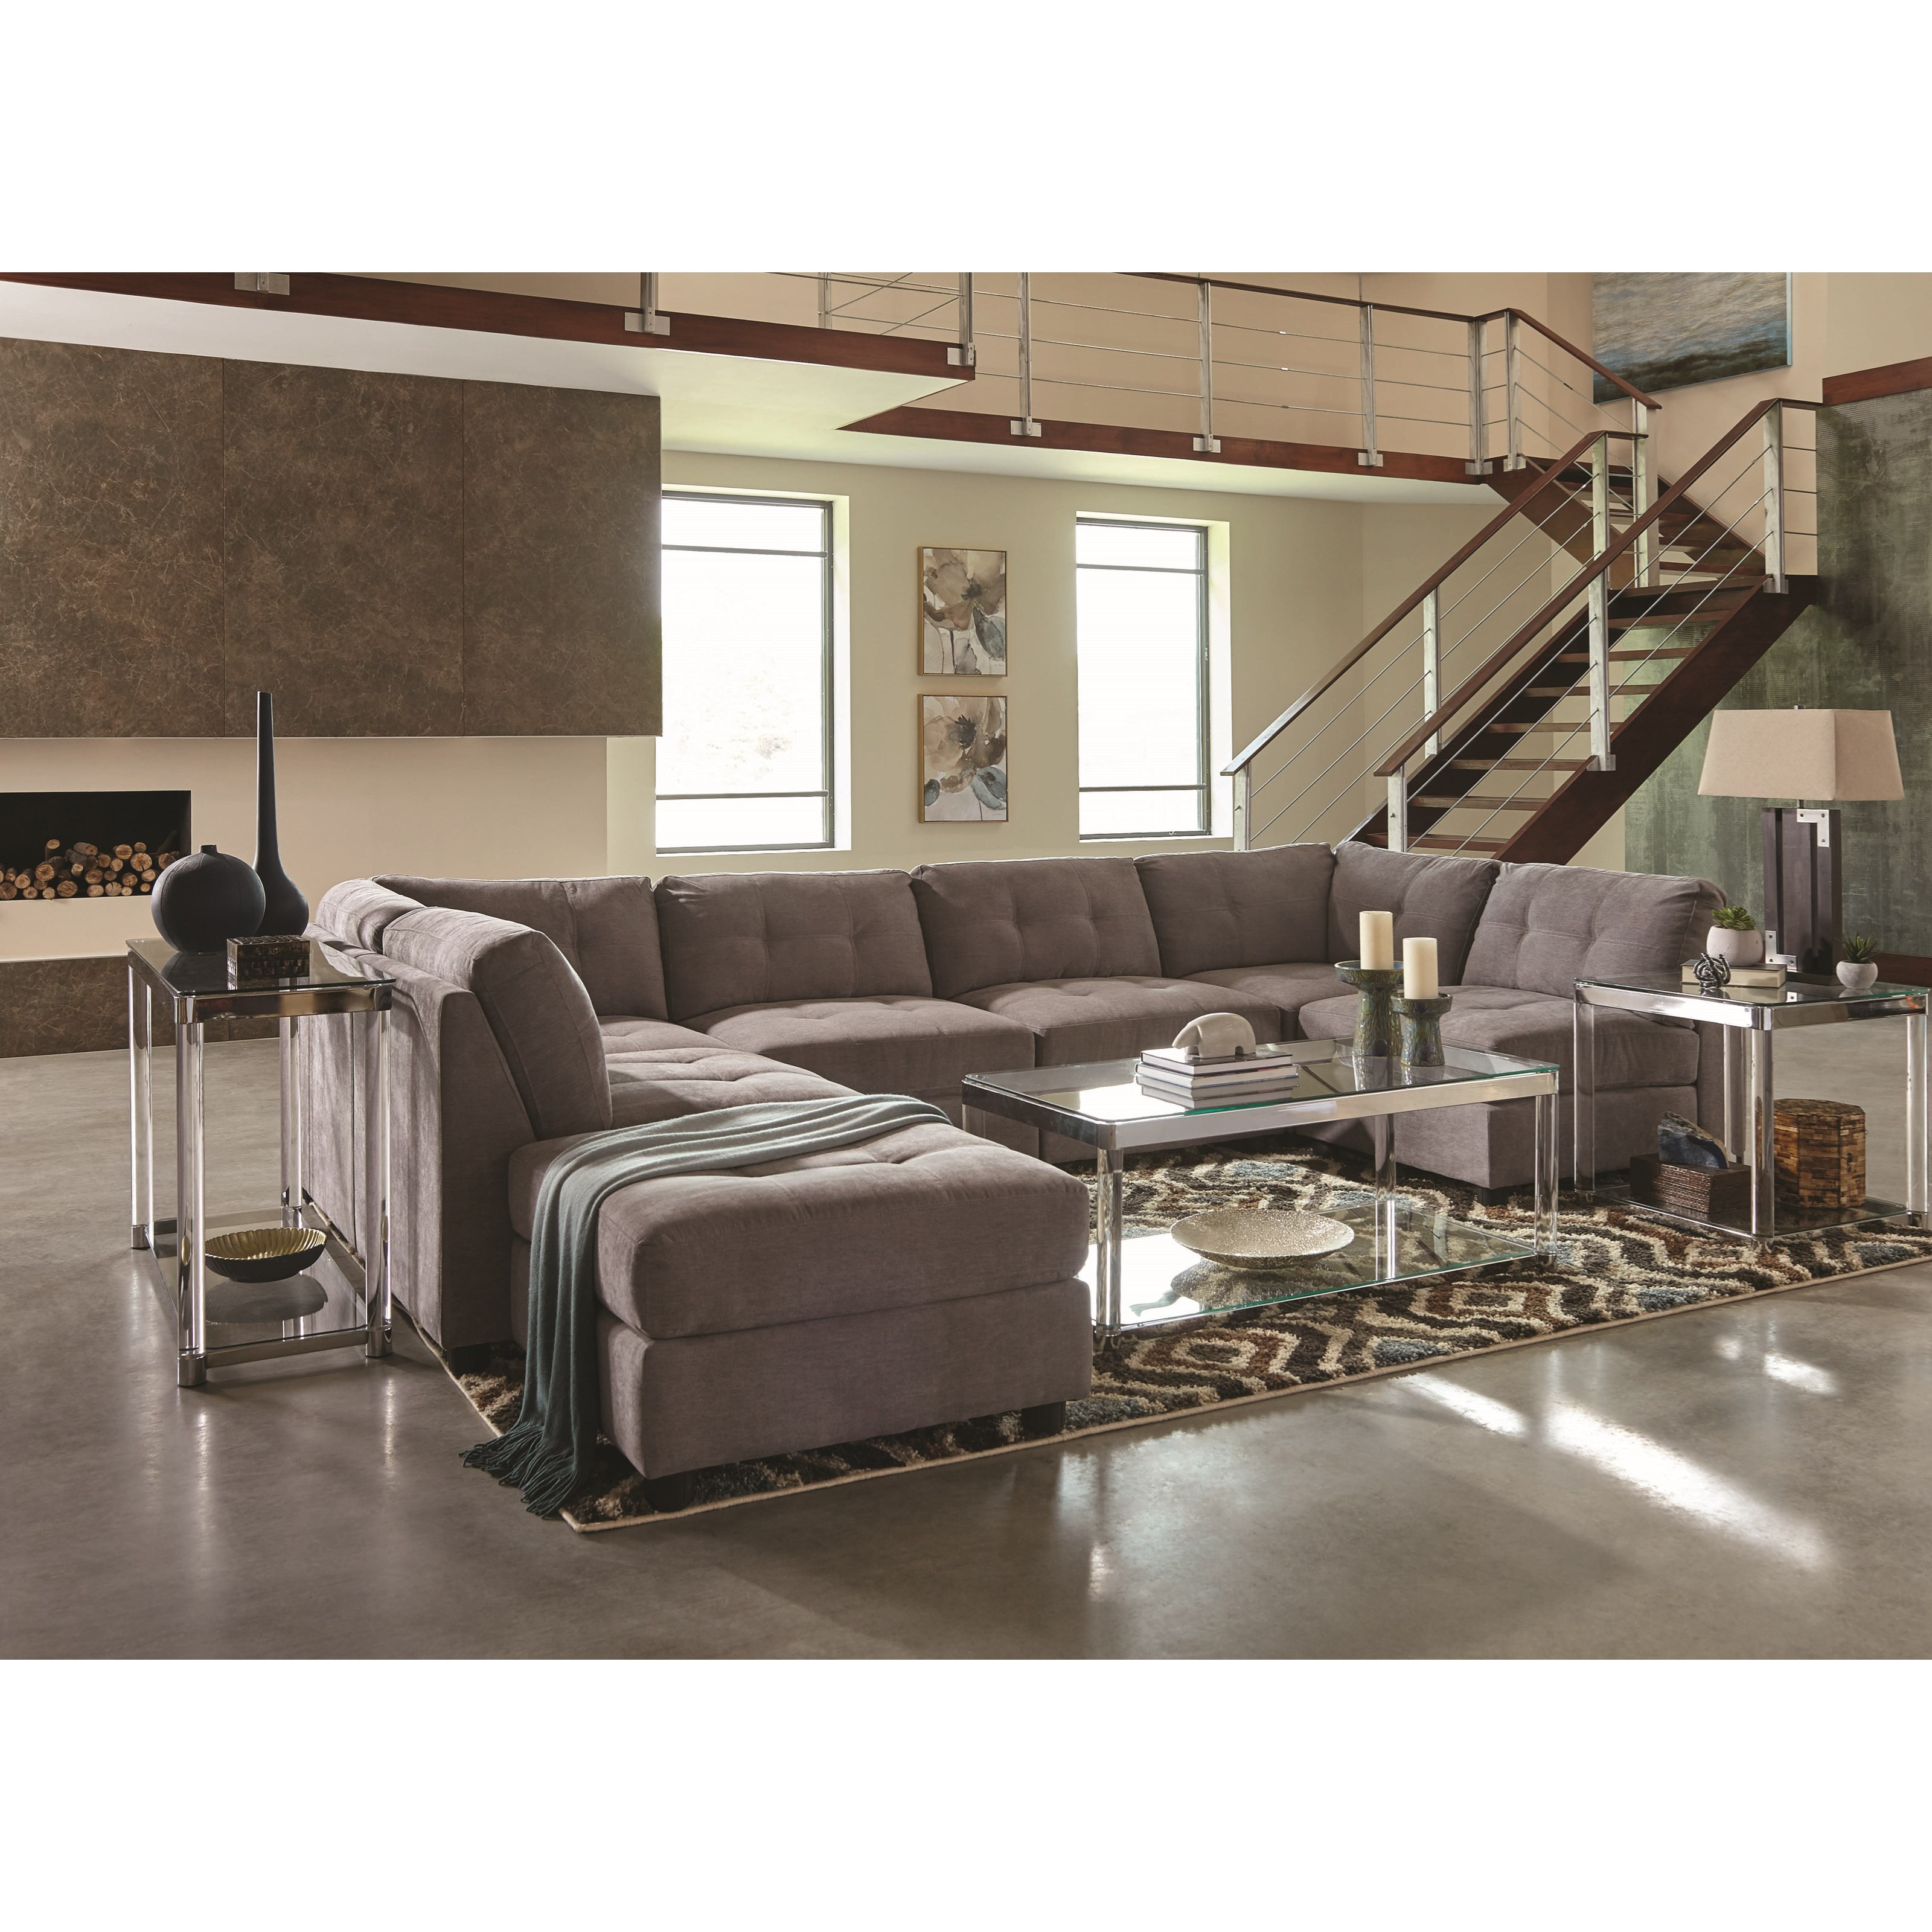 Coaster Claude Stationary Living Room Group - Item Number: 551000 Living Room Group 2